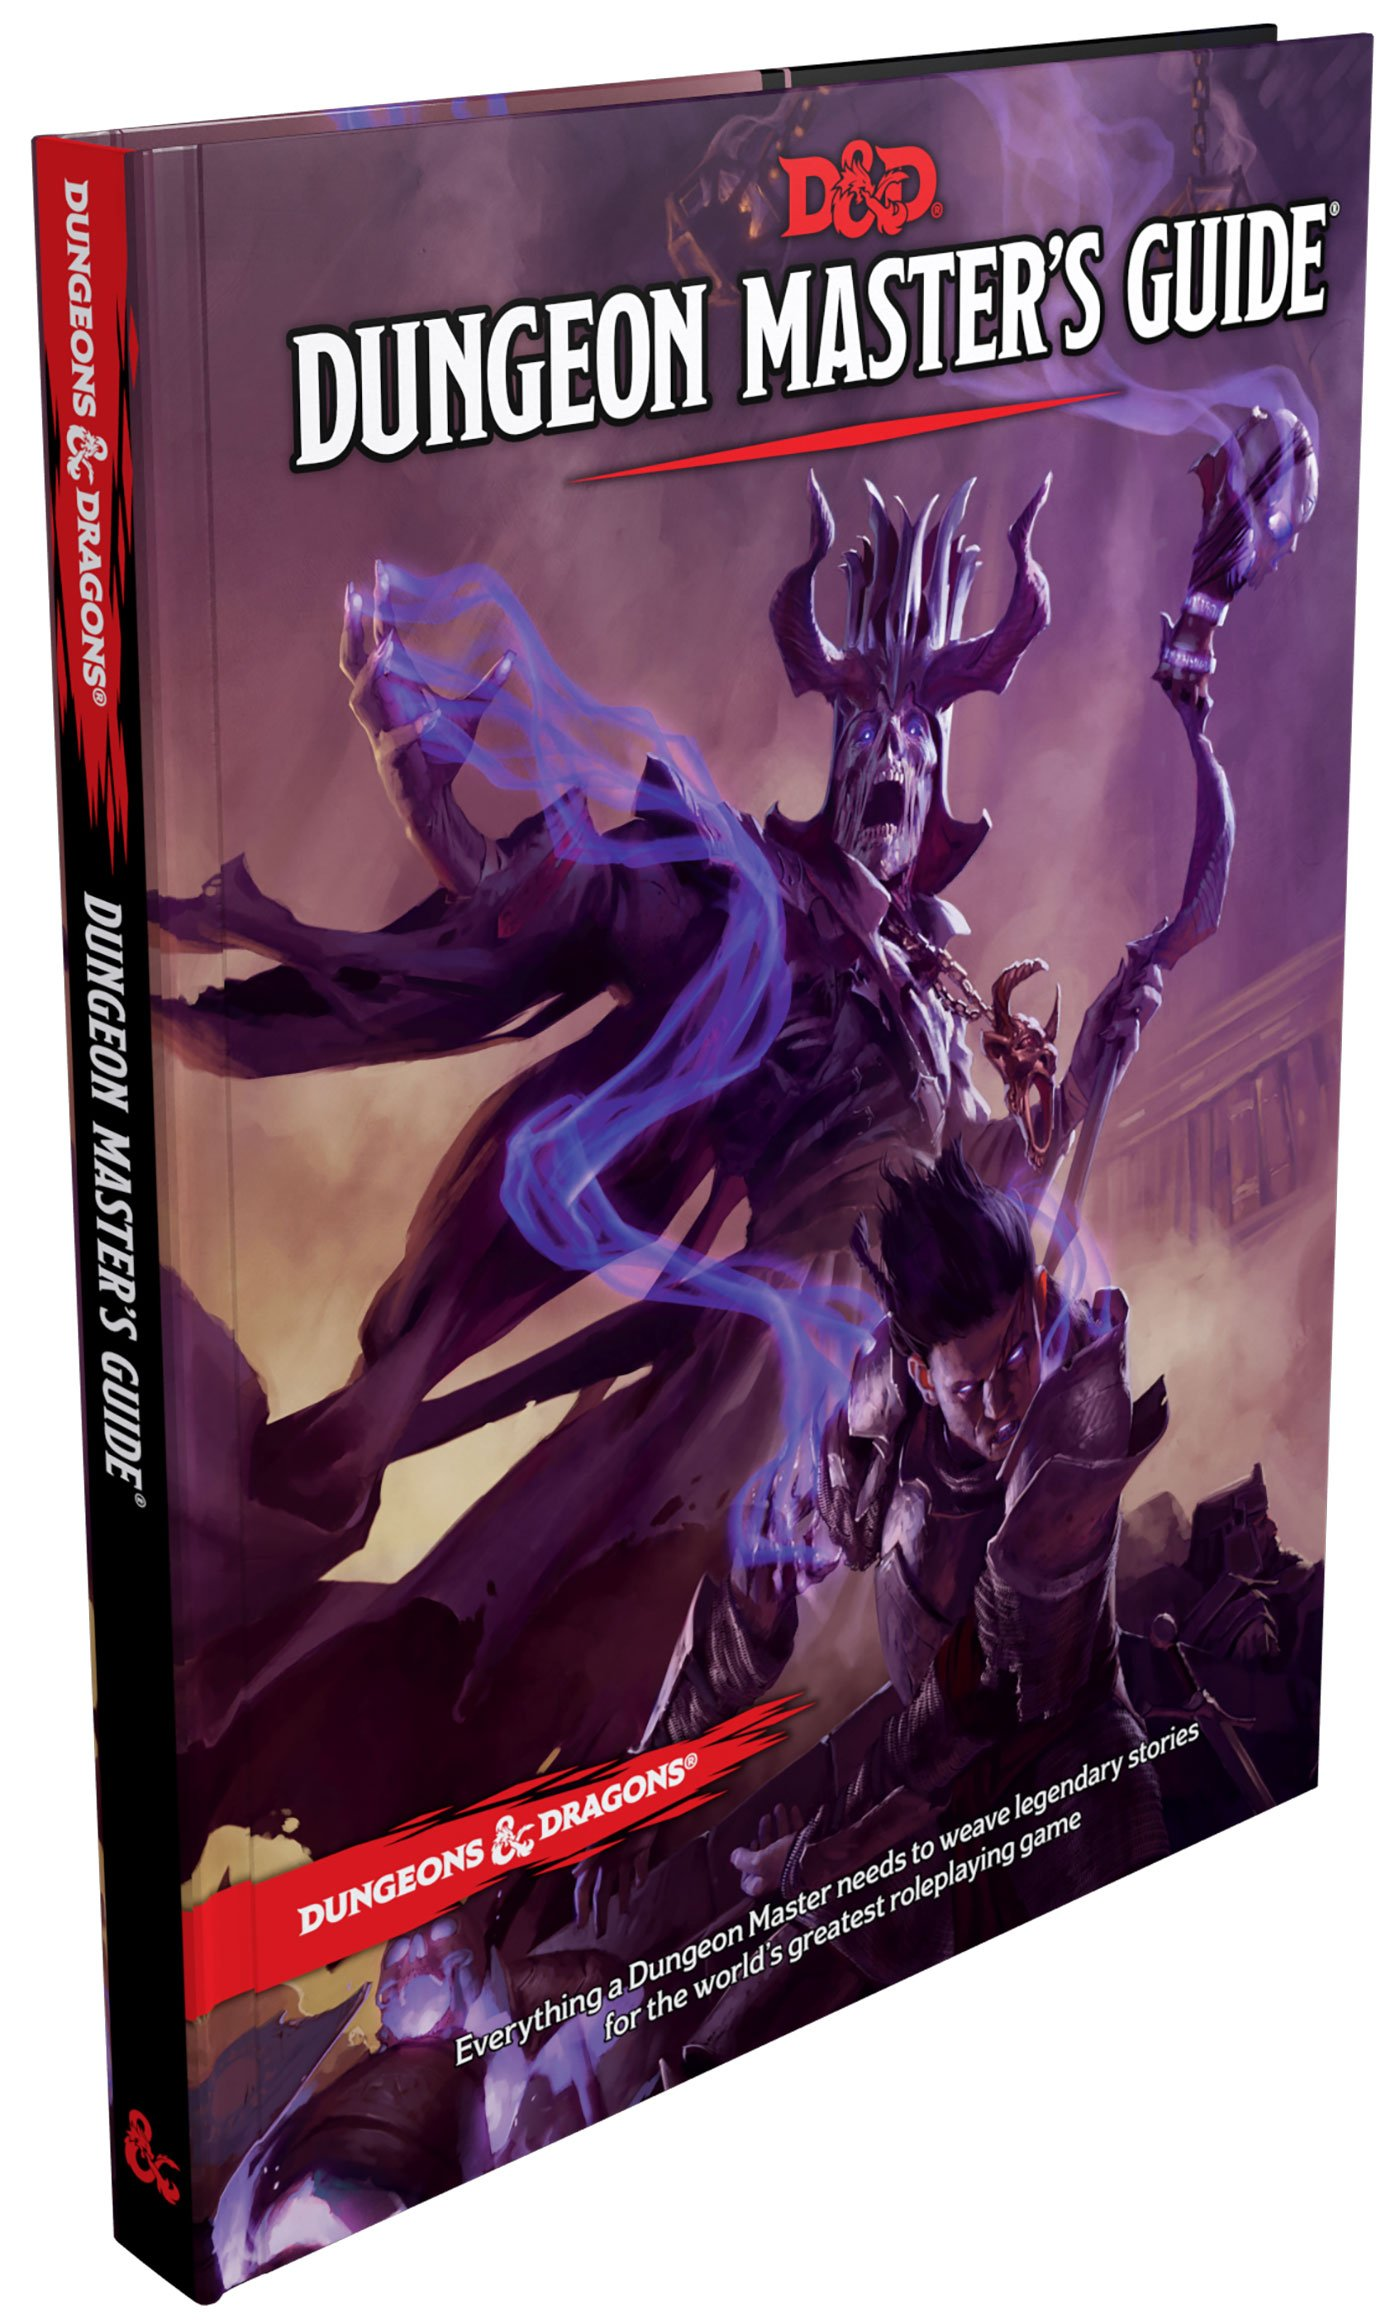 Dungeon masters guide dd core rulebook wizards rpg team dungeon masters guide dd core rulebook wizards rpg team 8601416371511 amazon books fandeluxe Gallery